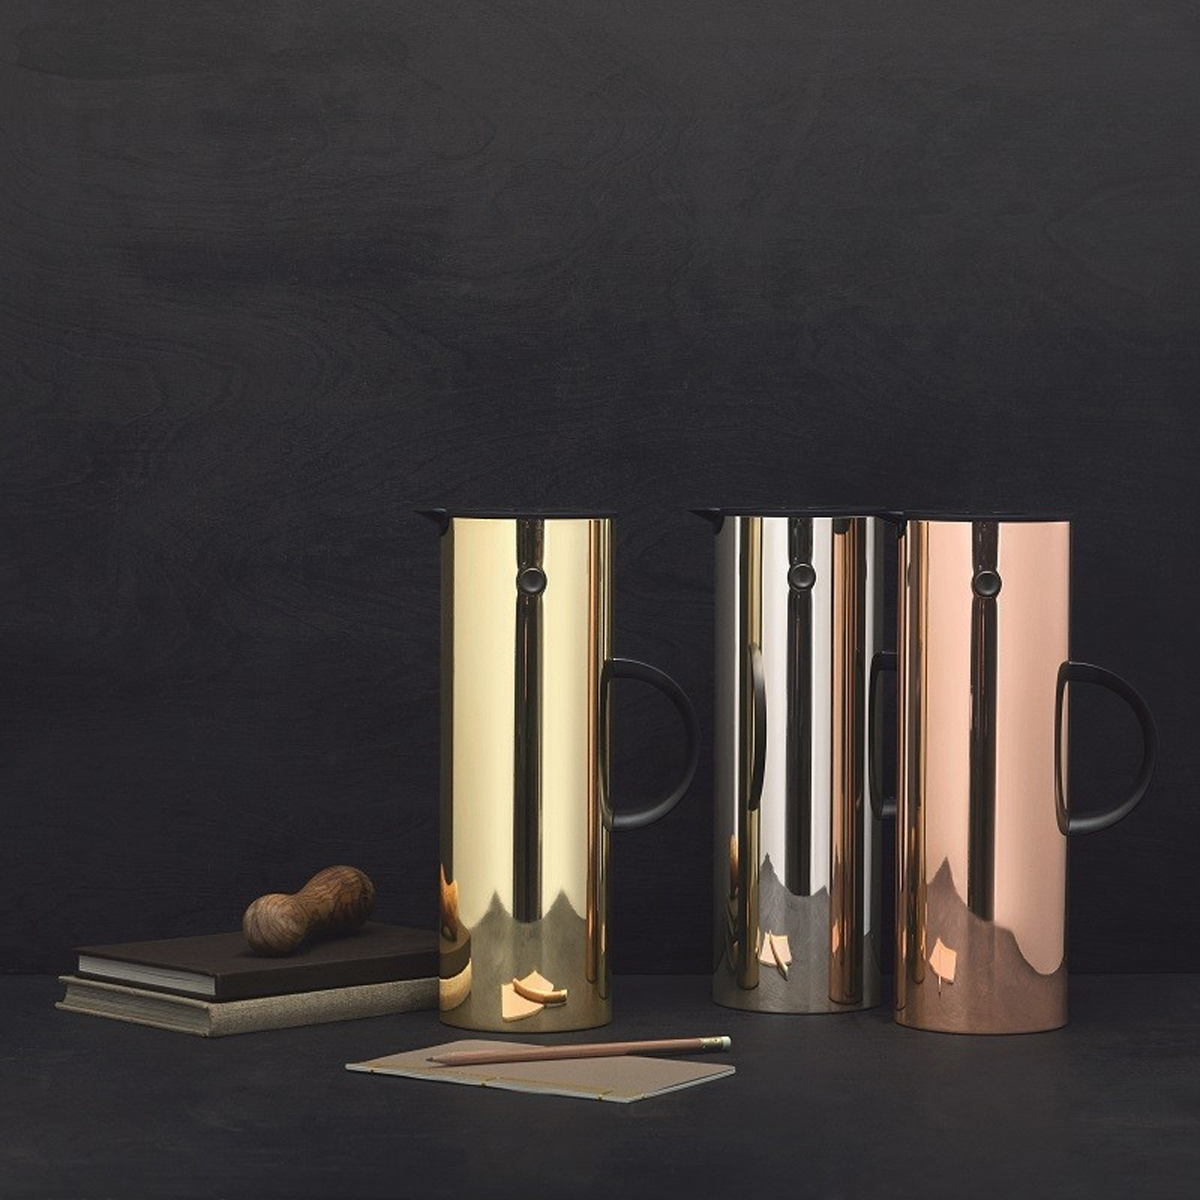 Stelton Classic EM77 Metallic Vacuum jug in brass, cooper and mirror